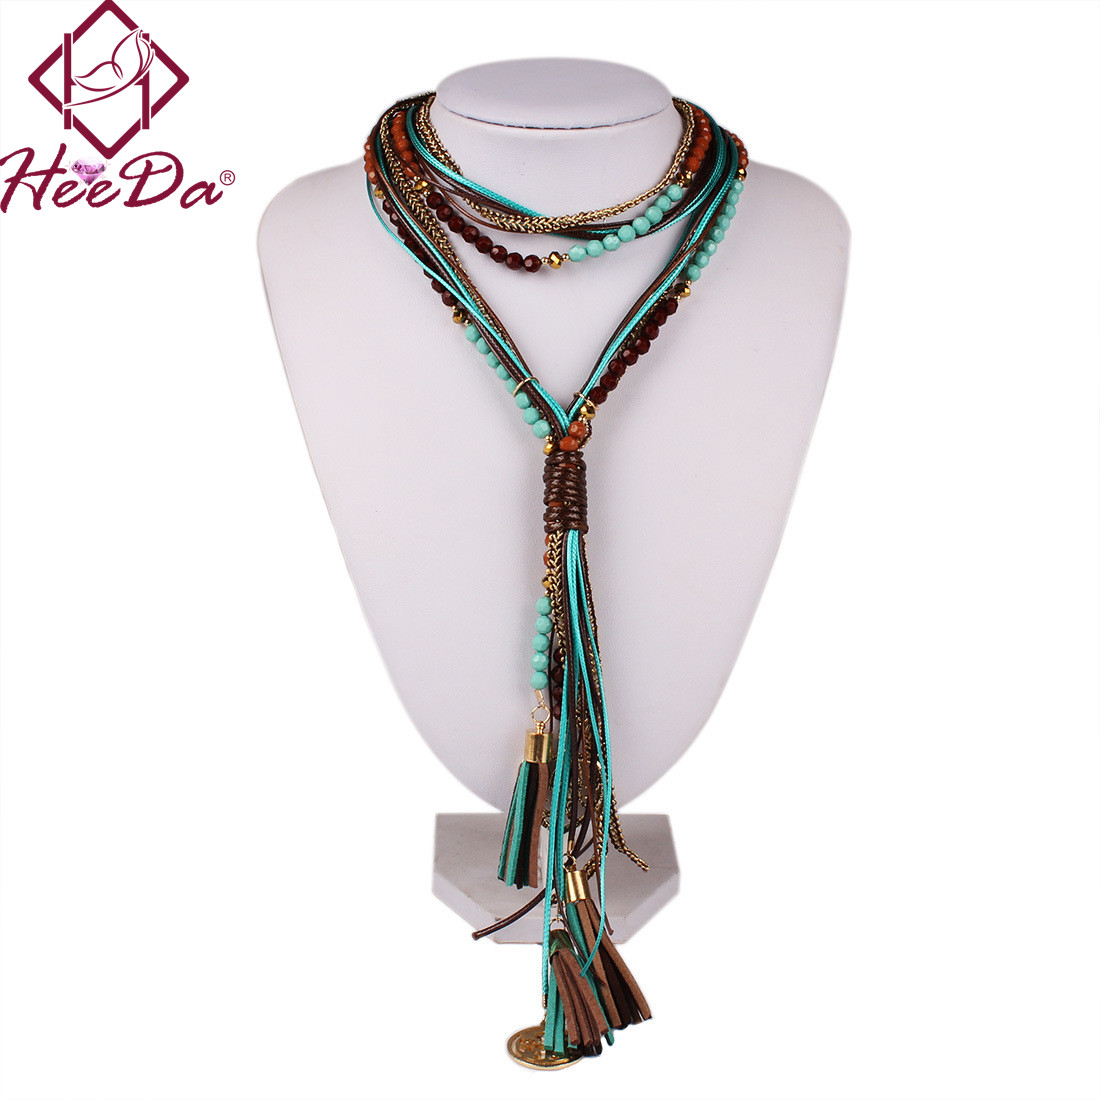 Boho Women Summer Long Necklace Handmade Round Bead Tassel Neck Accessories Green Red Statement Jewelry New Joker Sweater Chian